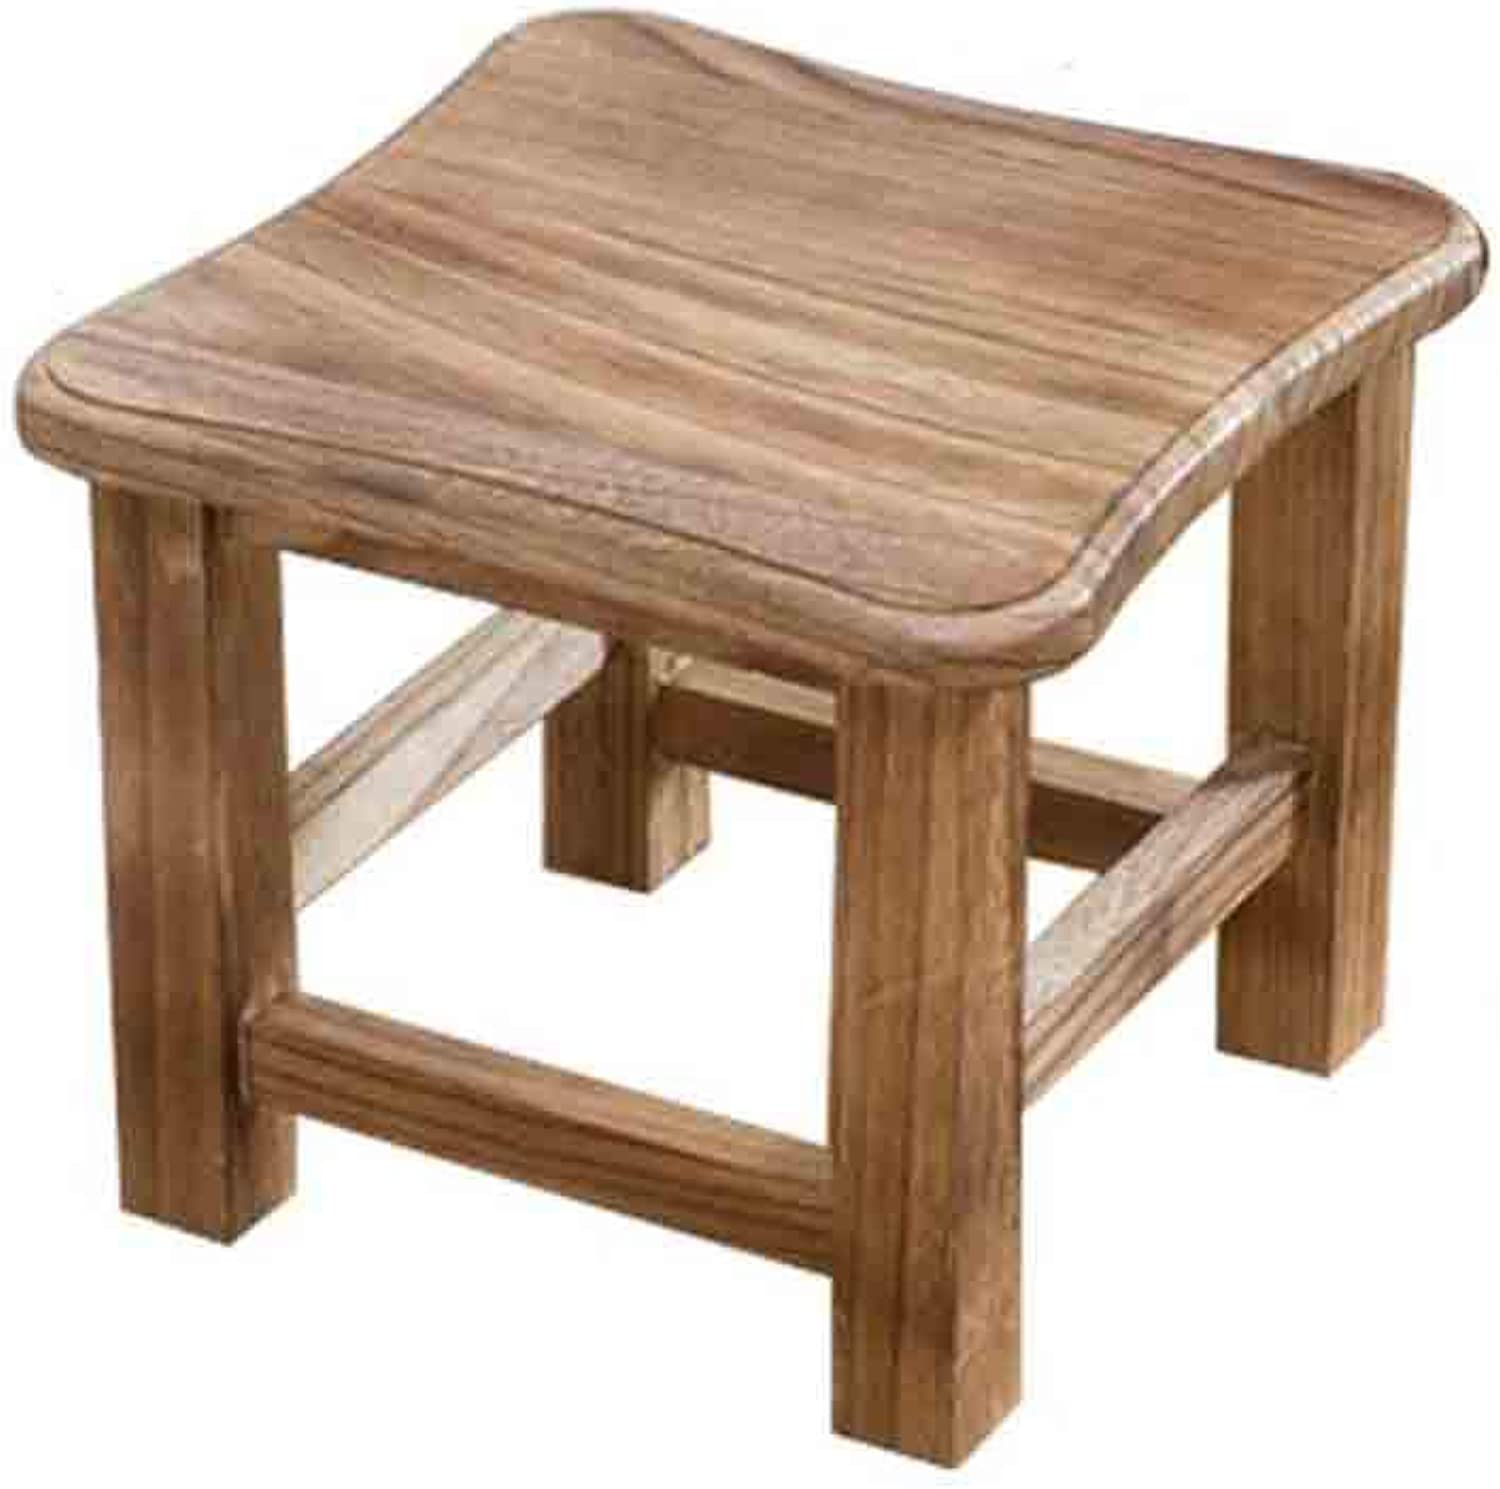 Fashion Creative Solid Wood Stool, Home Living Room seat Stool Low Stool Change shoes Bench Square Stool (color   B)